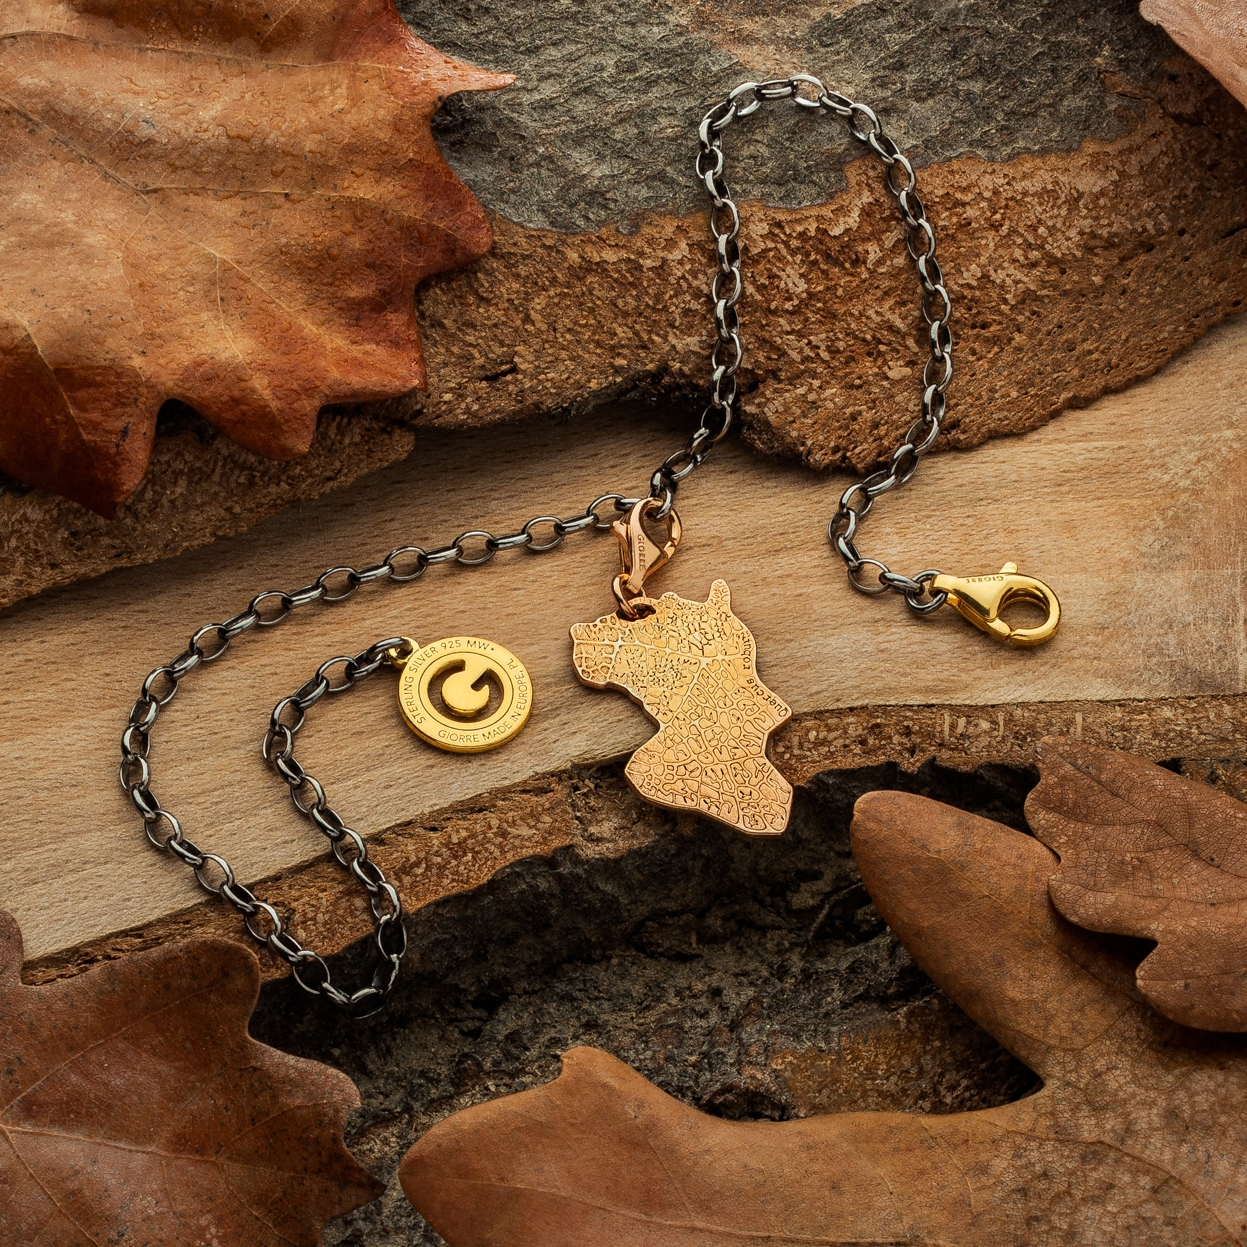 CHARMS 12, OAK LEAF,  STERLING SILVER RHODIUM OR 24K GOLD PLATED